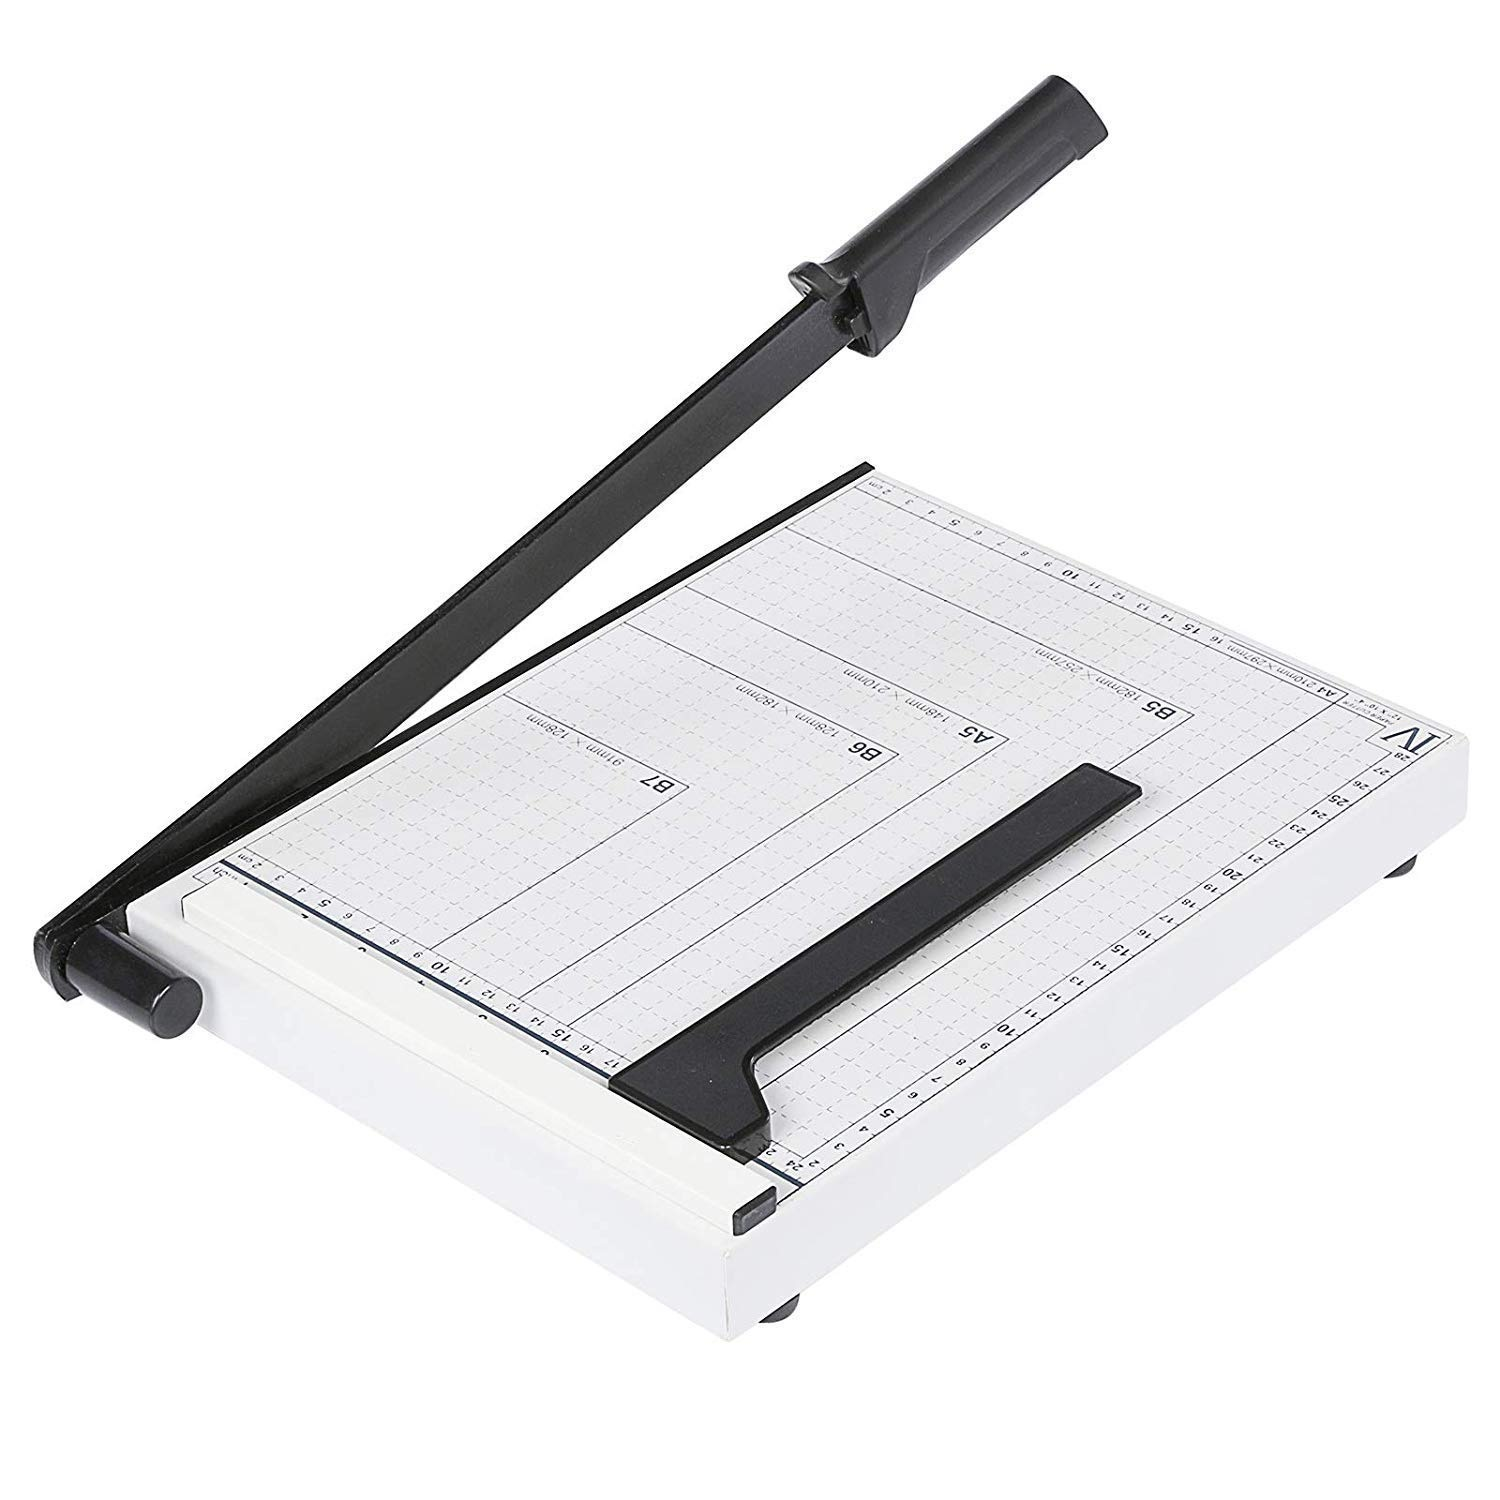 Ekavir Solid Paper Cutter Trimmer Cutters Metal Base 12 Inch Support A4/B5/B6/B7/A5 Post Card and Photo (L) Size Paper Cutting